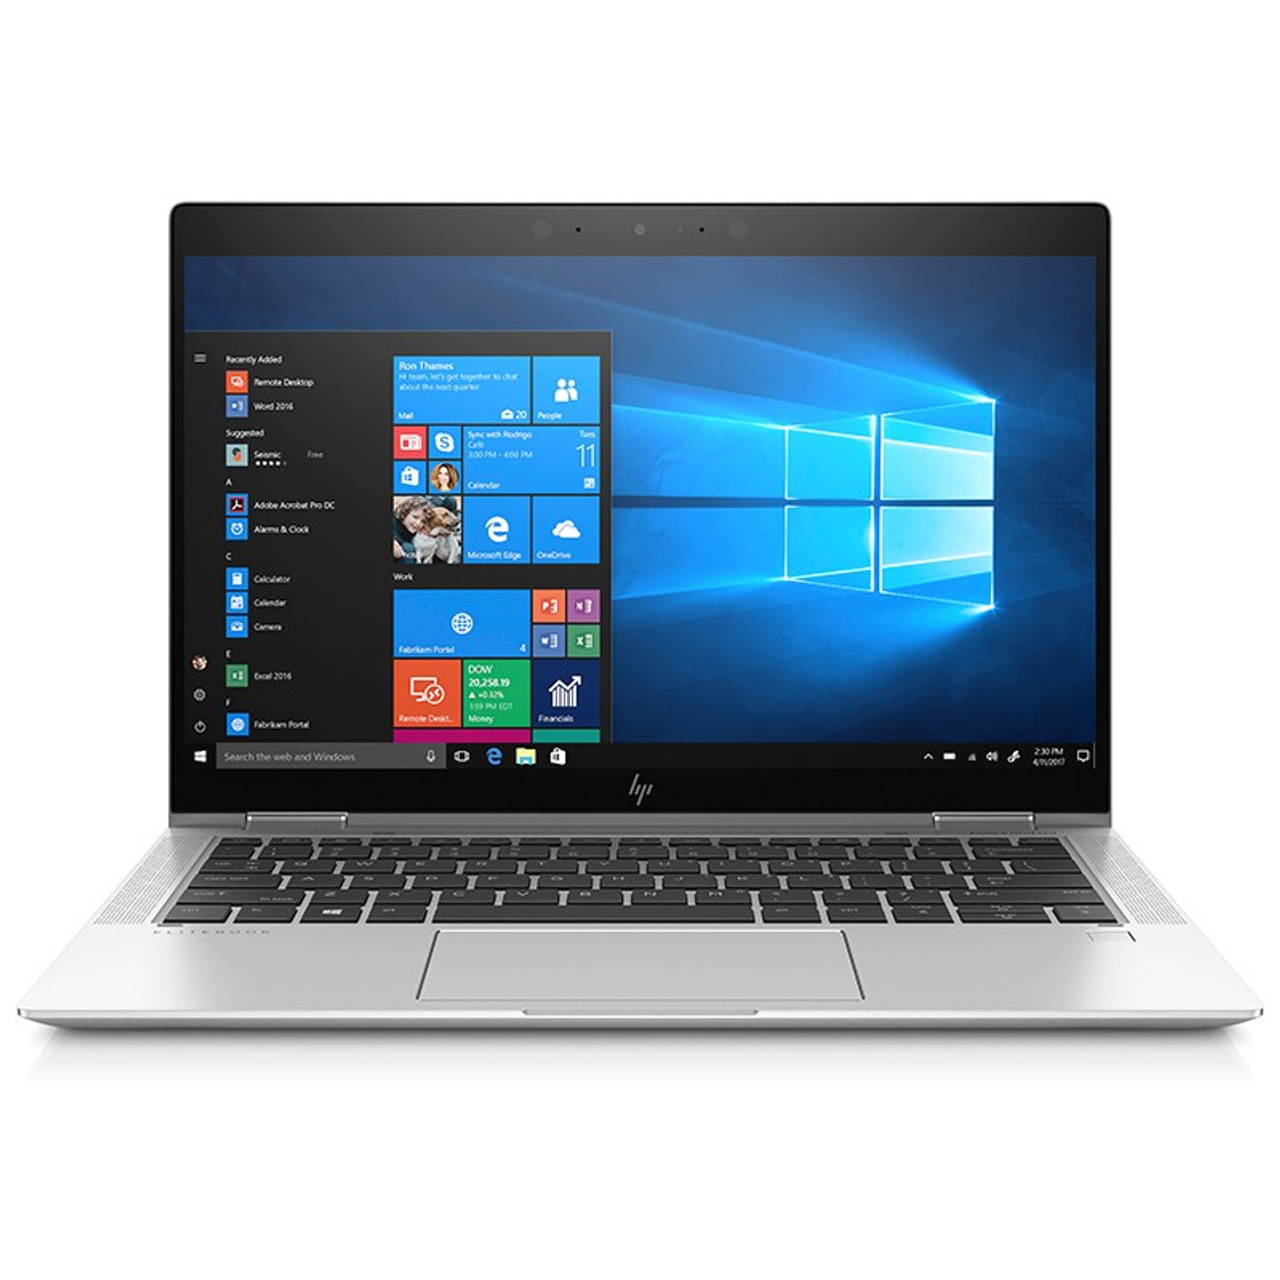 Image for HP EliteBook x360 1030 G4 13.3in Laptop i5-8365U 8GB 256GB W10P Touch CX Computer Superstore